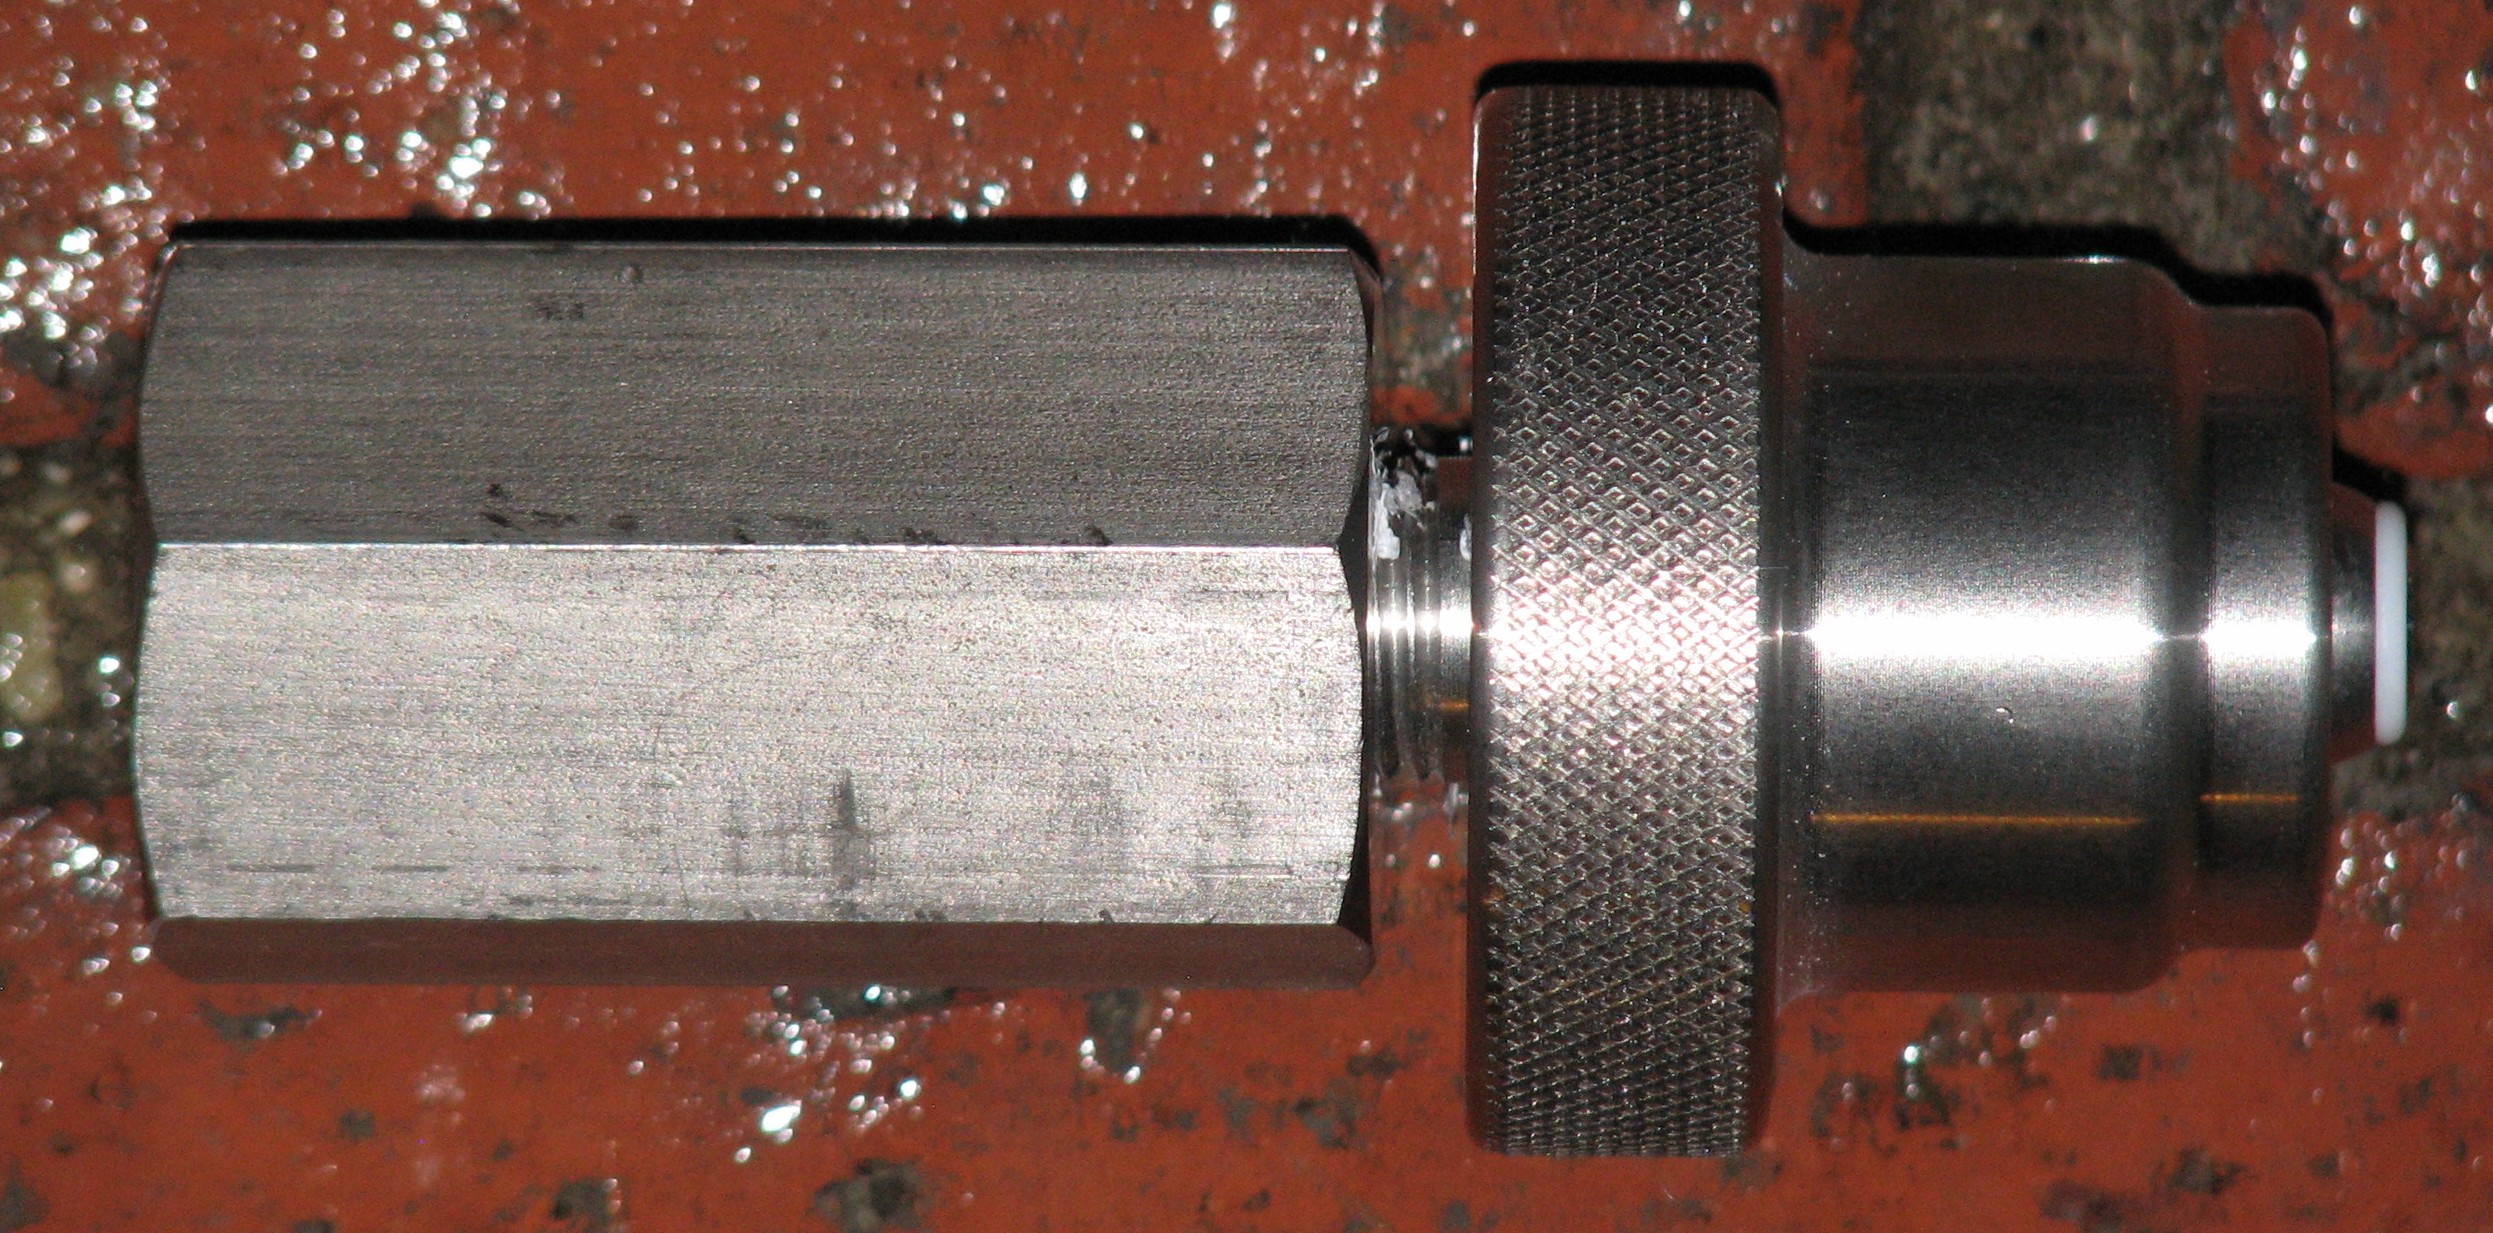 Microbore hose with female quick disconnects each end for